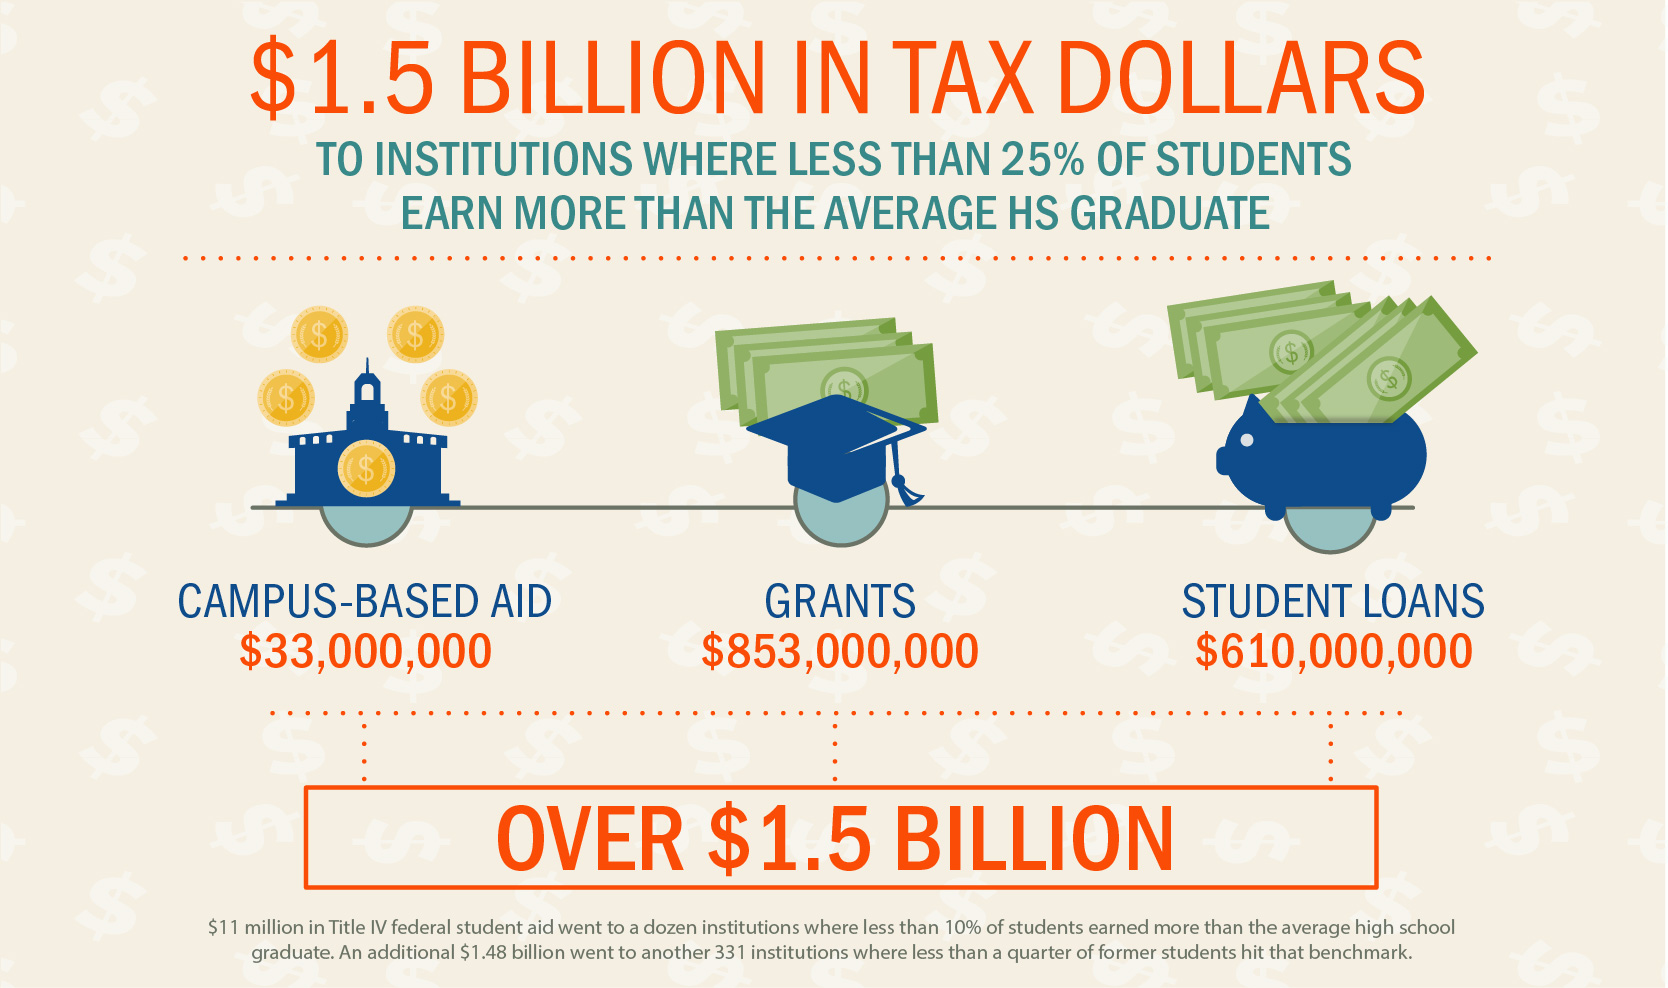 $1.5B in taxpayer dollars went to institutions where less than 25% of students earn more than the average high school graduate